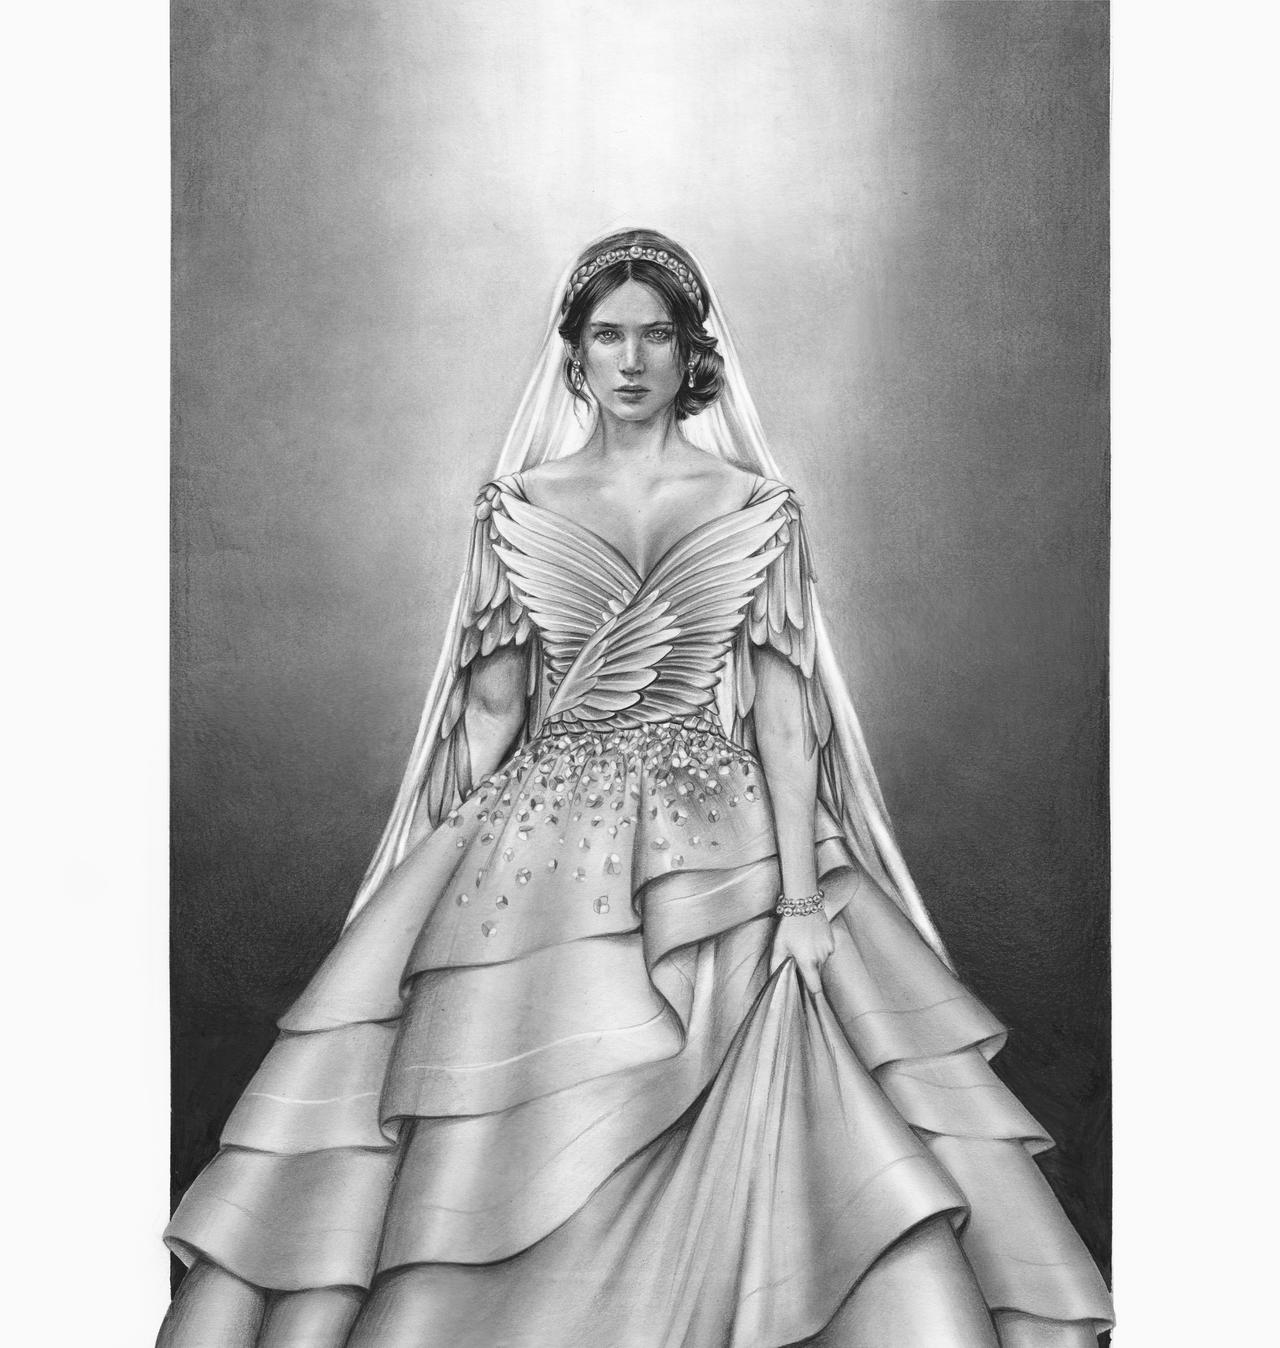 The hunger games catching fire katniss wedding dress designer - Katniss Wedding Dress By Mshah123 Katniss Wedding Dress By Mshah123